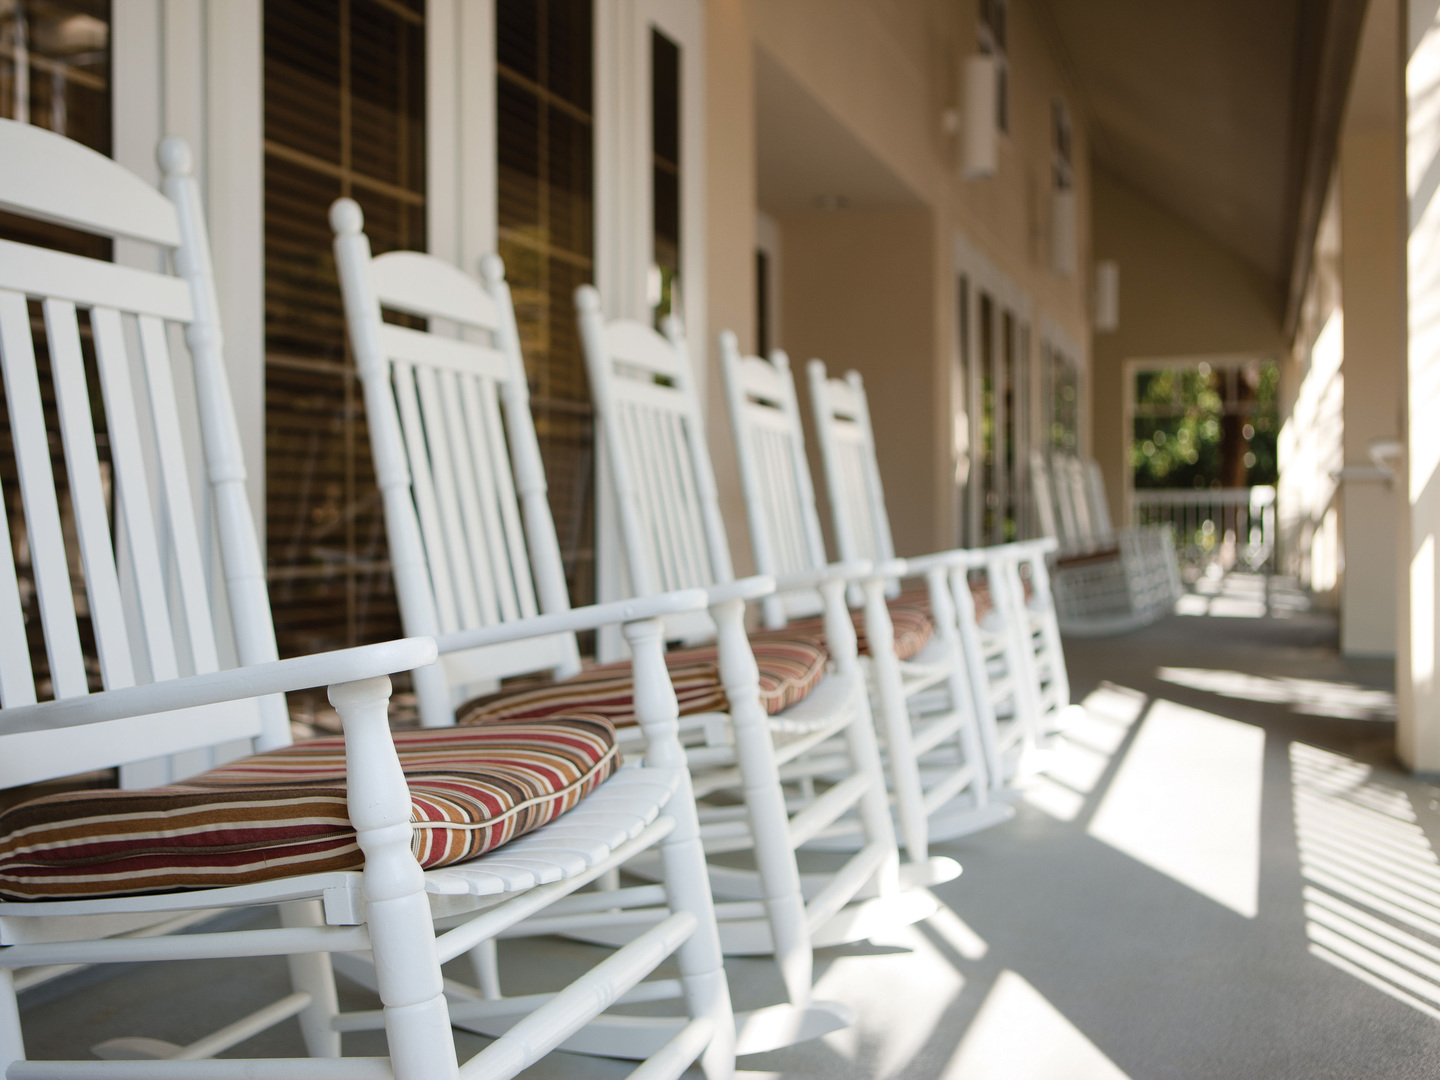 Marriott's Harbour Club Front Porch/Rocking Chairs. Marriott's Harbour Club is located in Hilton Head Island, South Carolina United States.